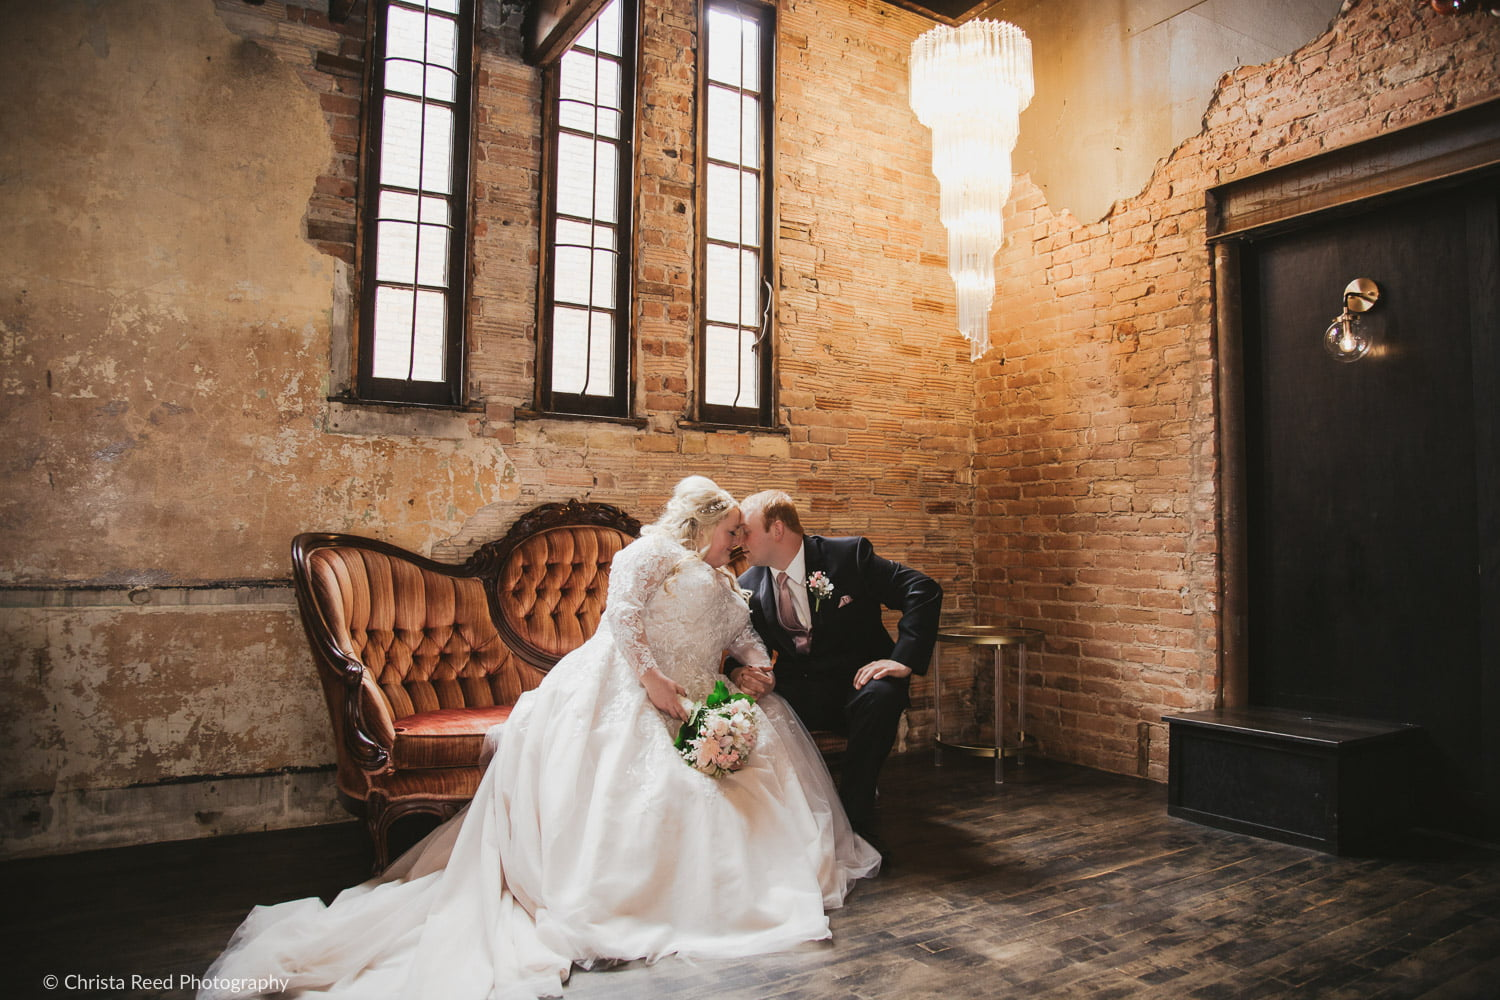 romantic wedding photography at the historic venue Capitol Room in St. Peter